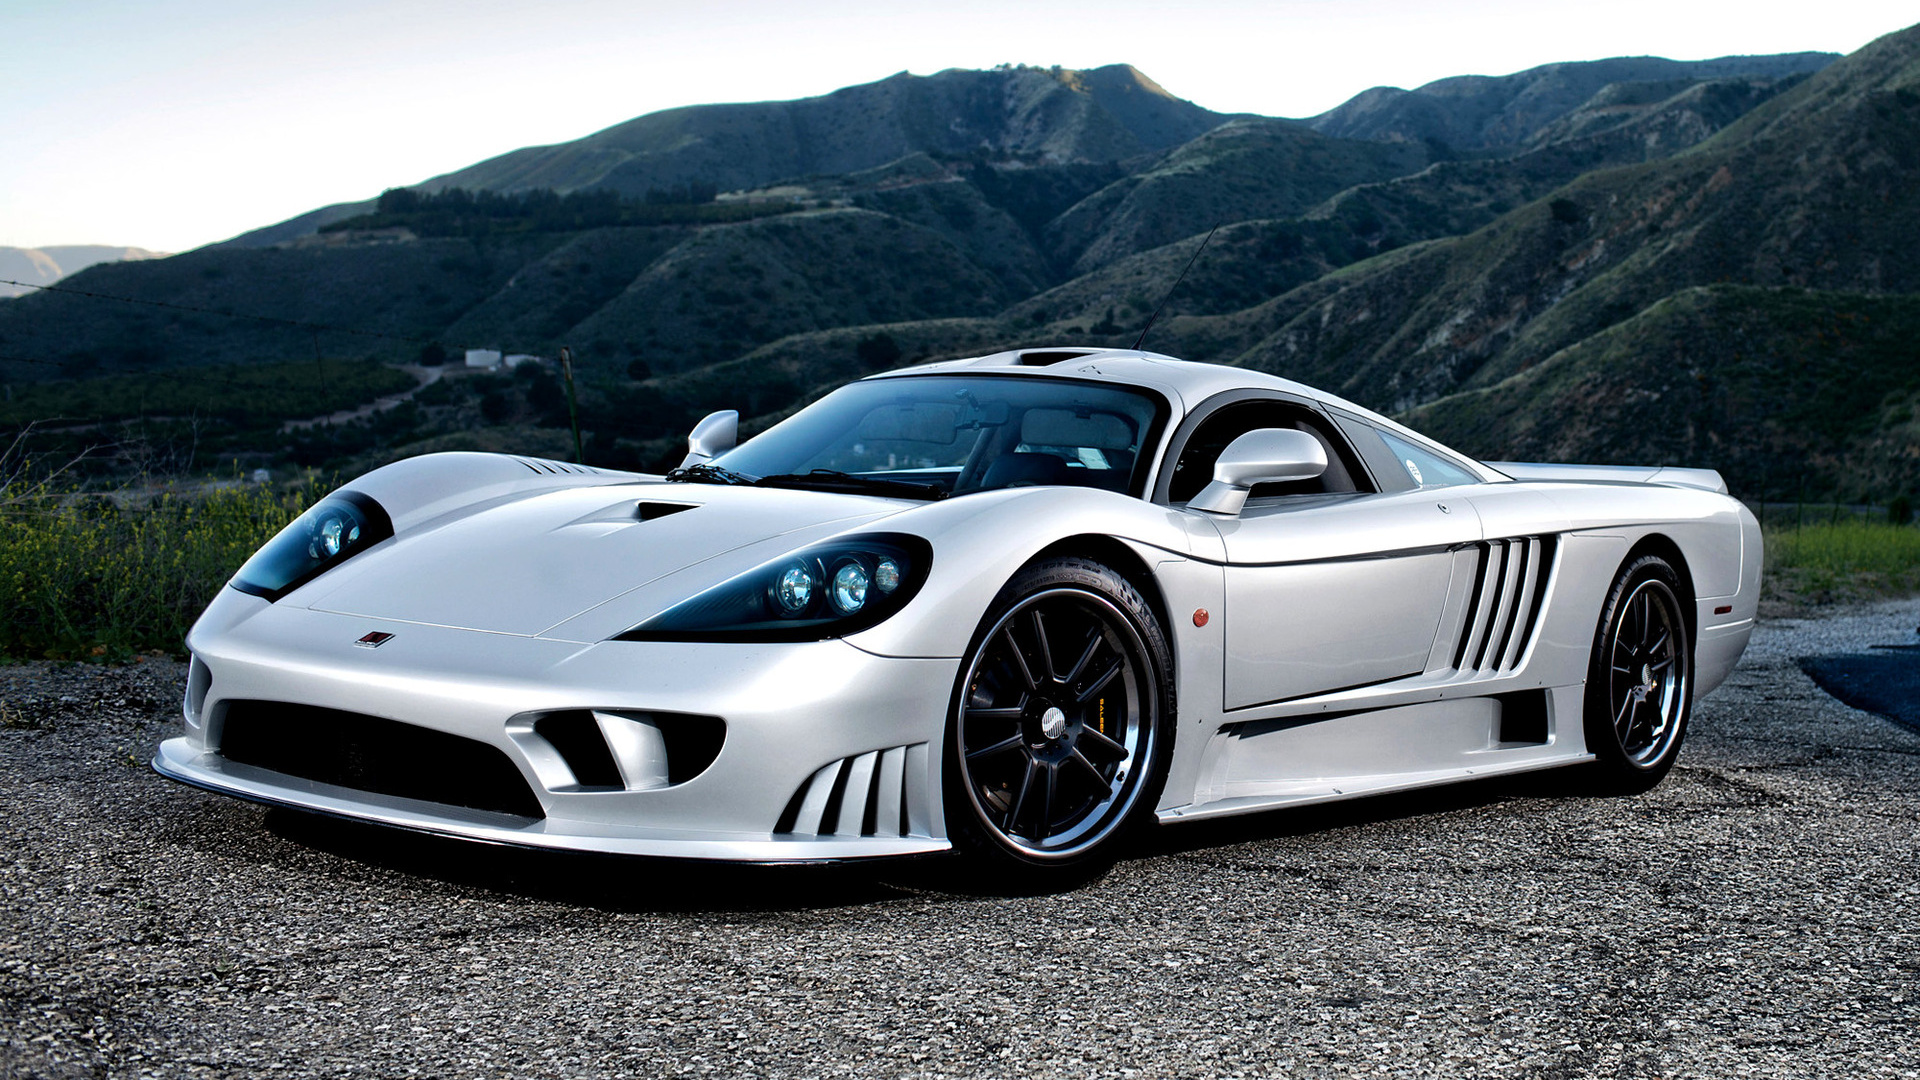 Saleen S7 (2000) Wallpapers and HD Images - Car Pixel